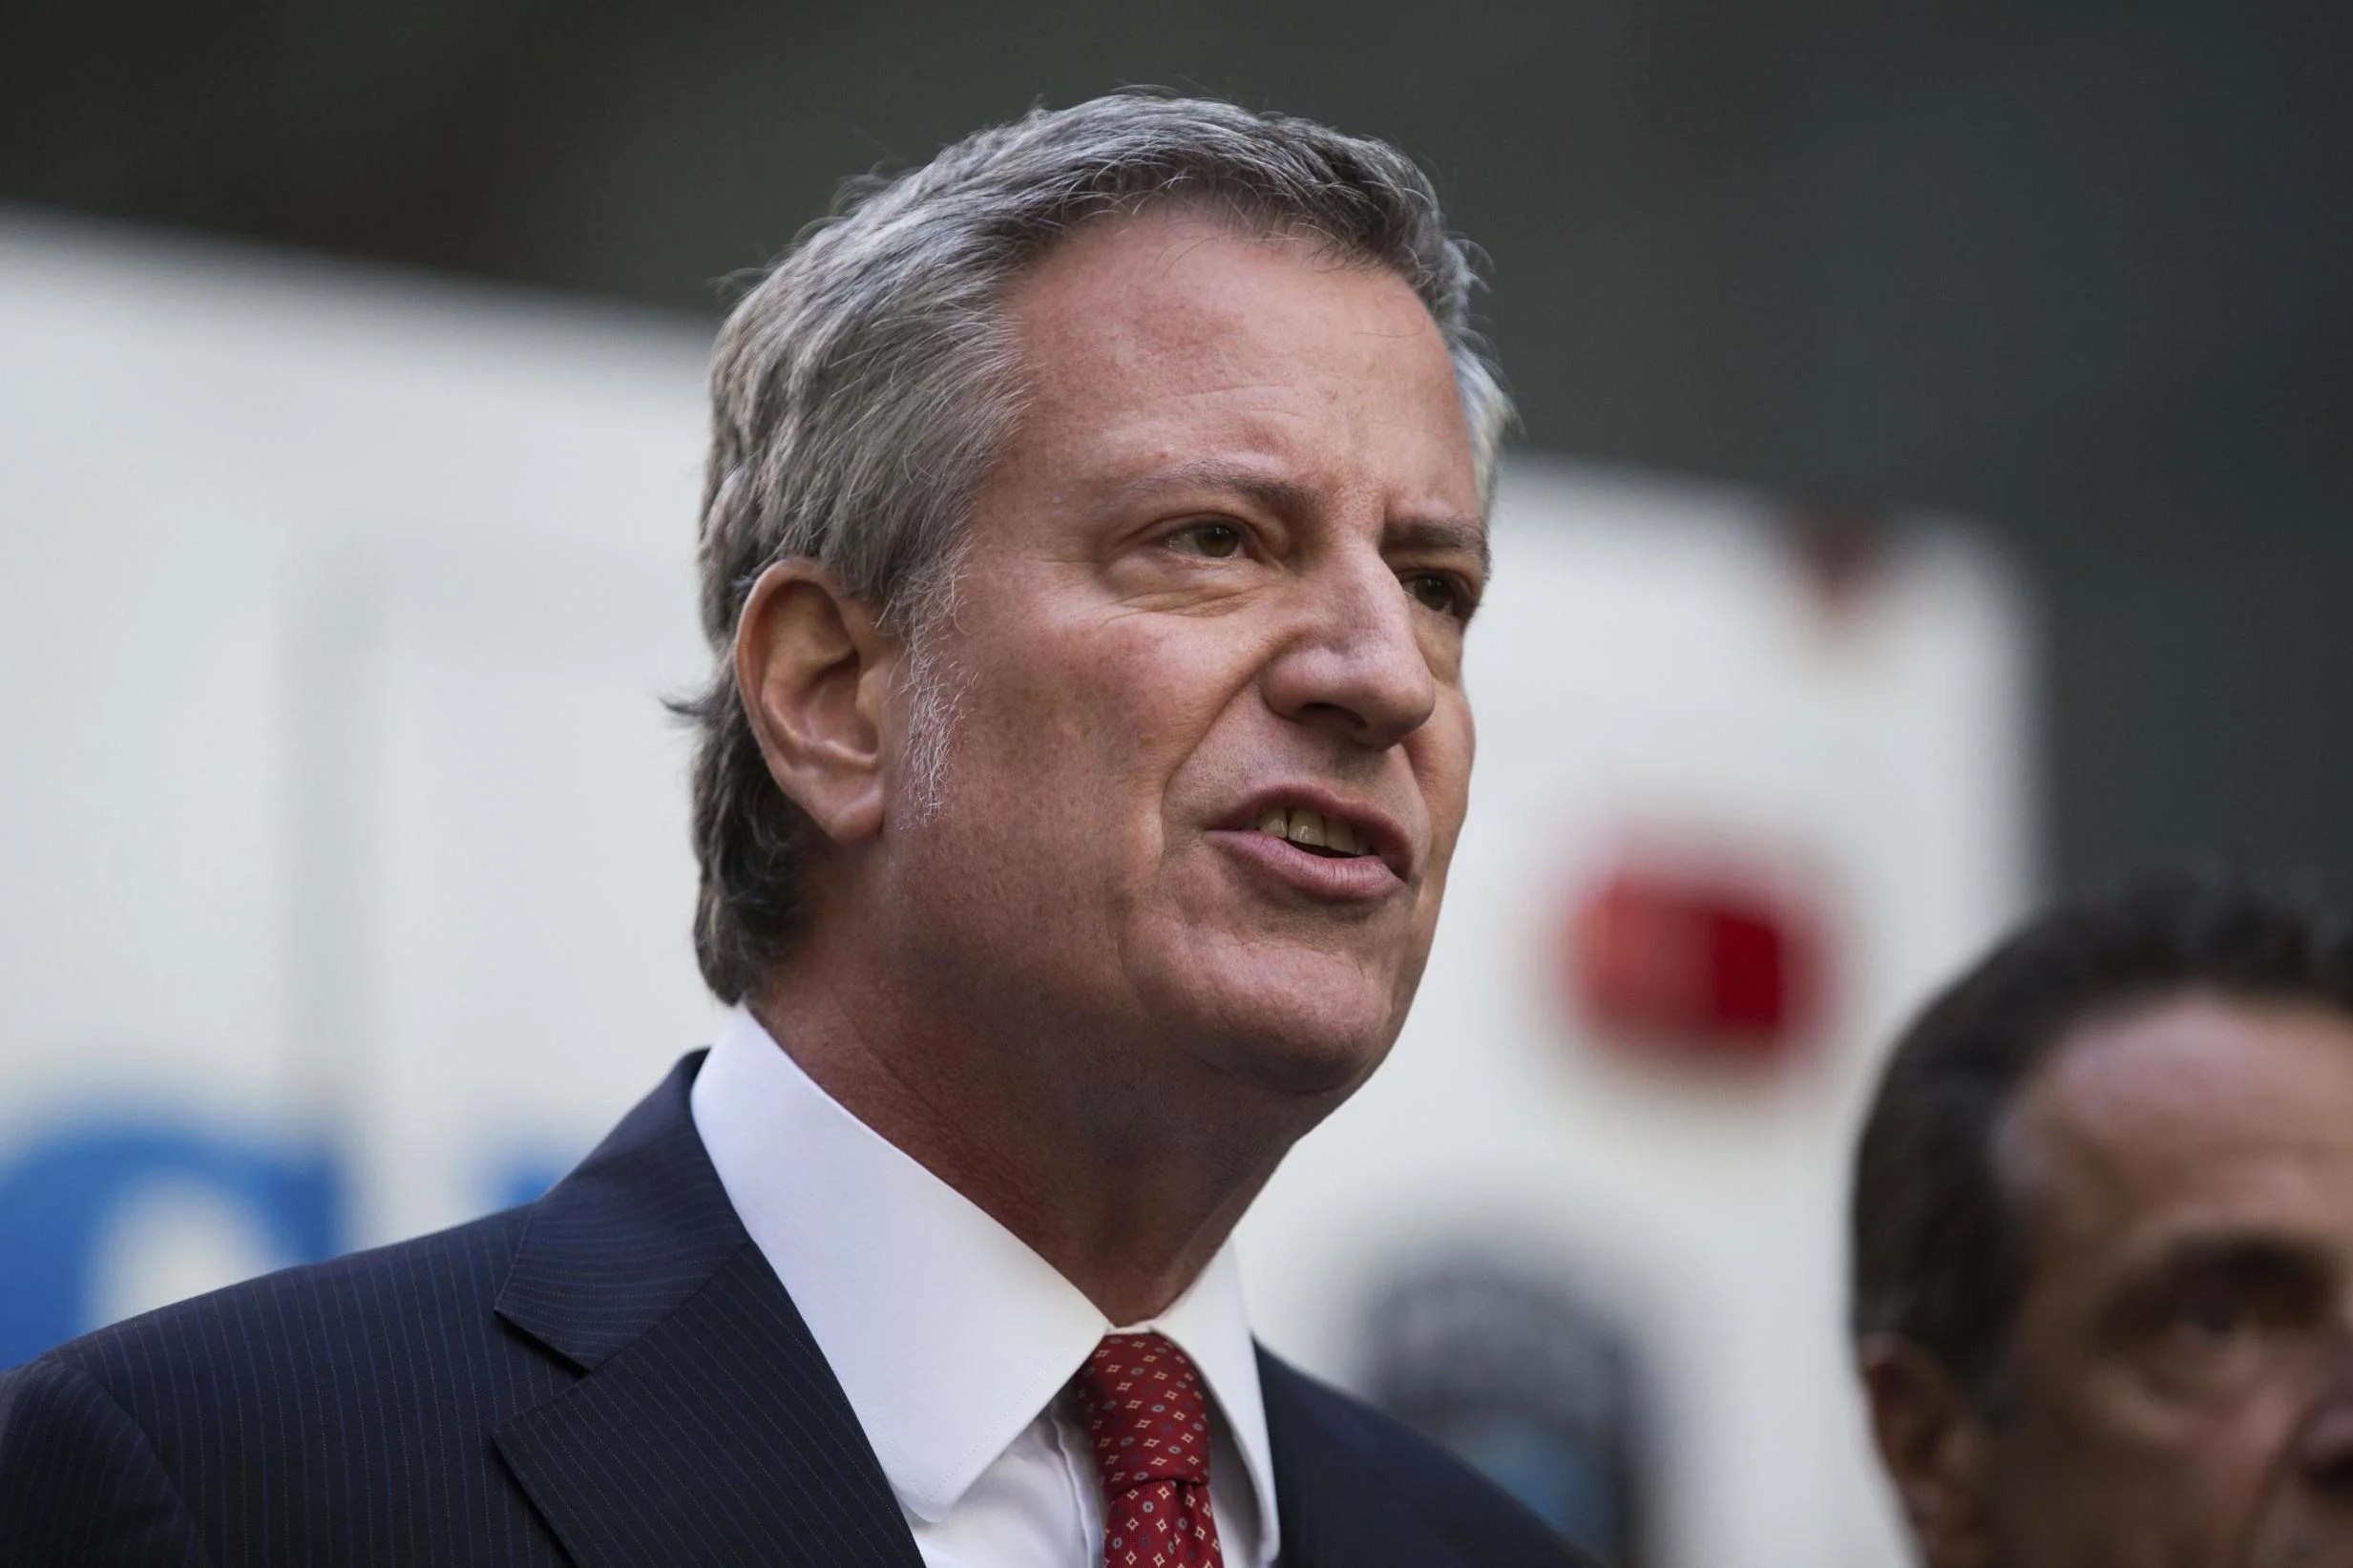 sei36638968 New York City mayor Bill de Blasio announces 2020 US presidential bid